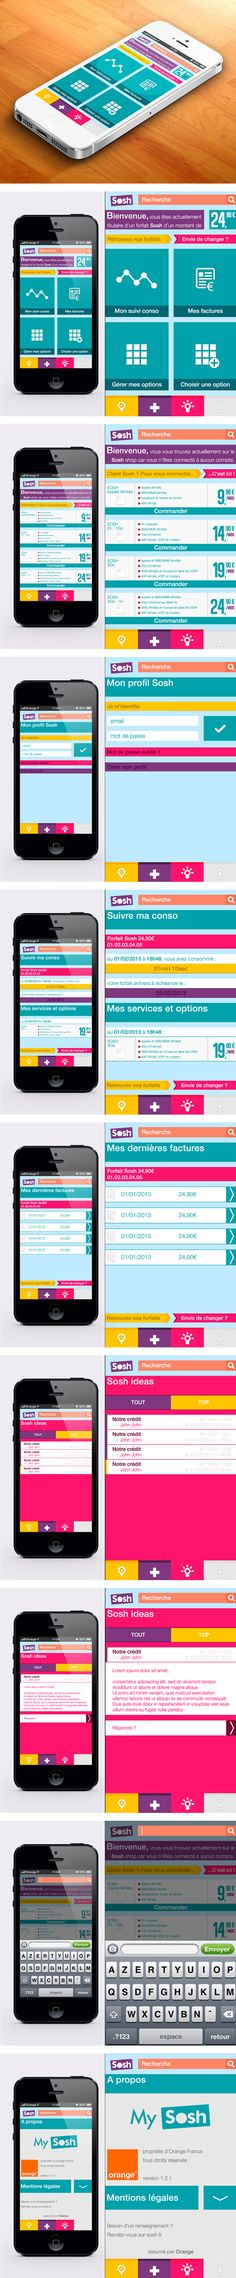 Sosh App by Ianis Soteras, via Behance *** A refresh of the current version of Sosh application for smartphone.